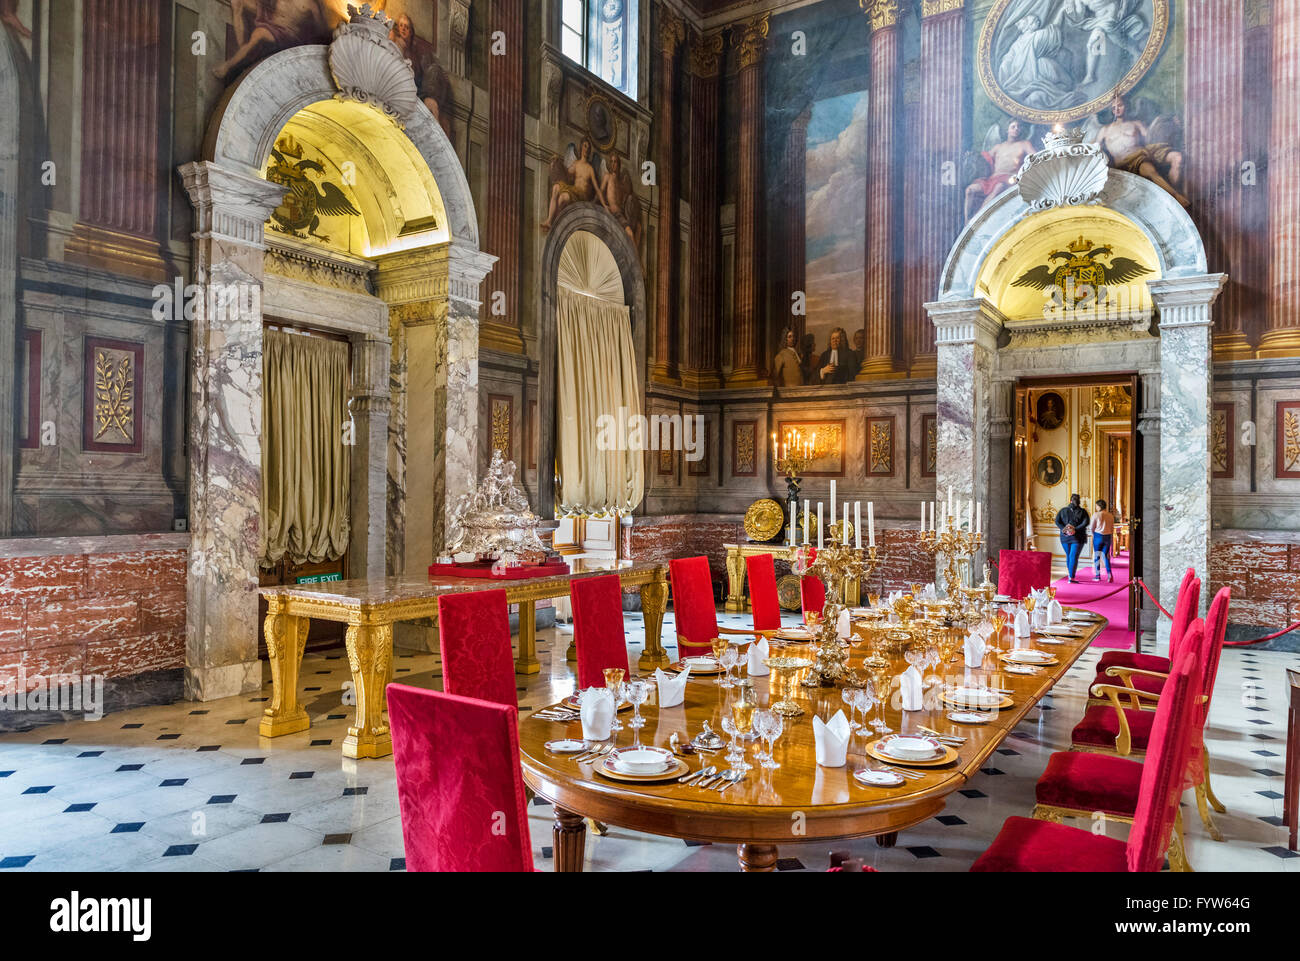 Dining Room, Blenheim Palace, seat of the Dukes of Marlborough and ...